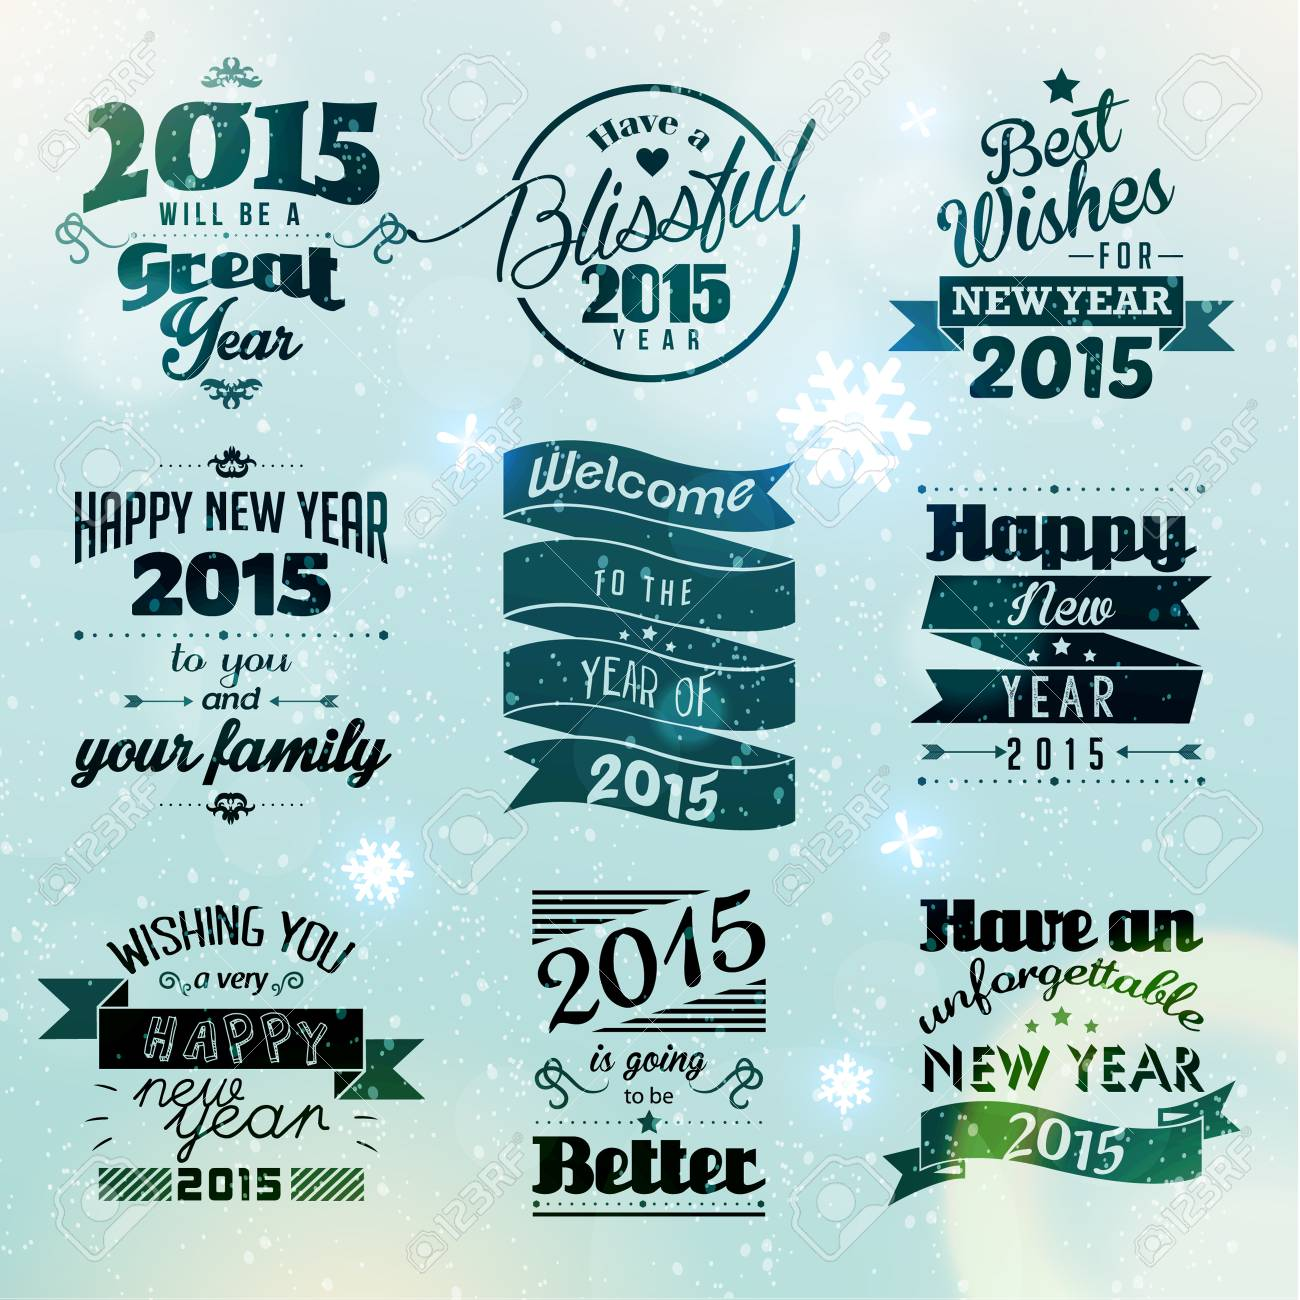 Happy New Year 2015 Season Greetings Quote Vector Design Royalty